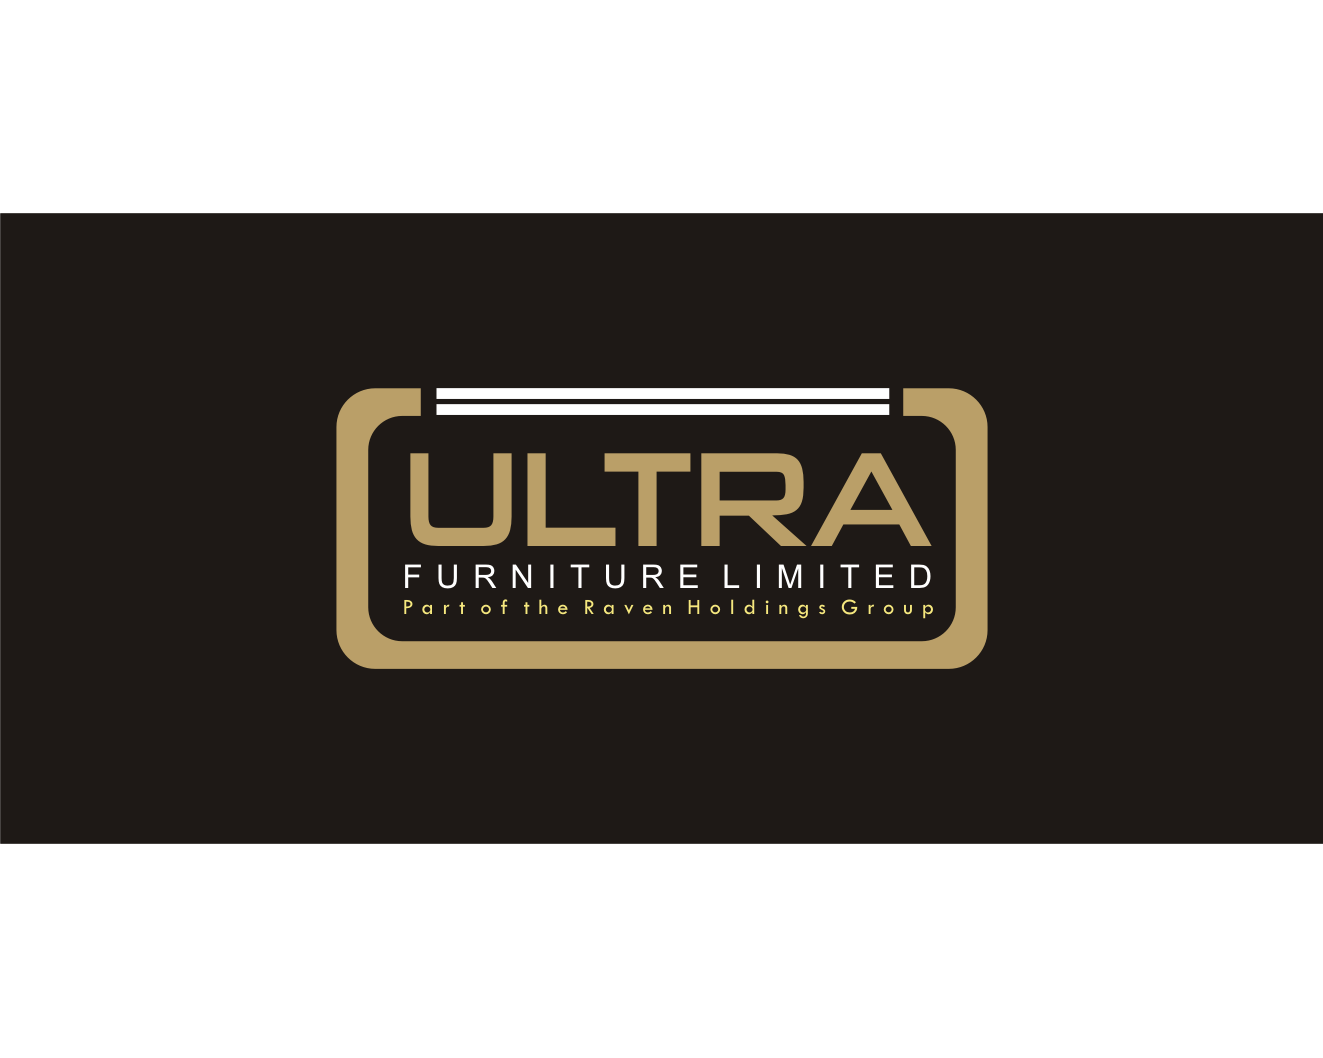 Logo for Ultra Furniture Limited (Part of the Raven Holdings Group)